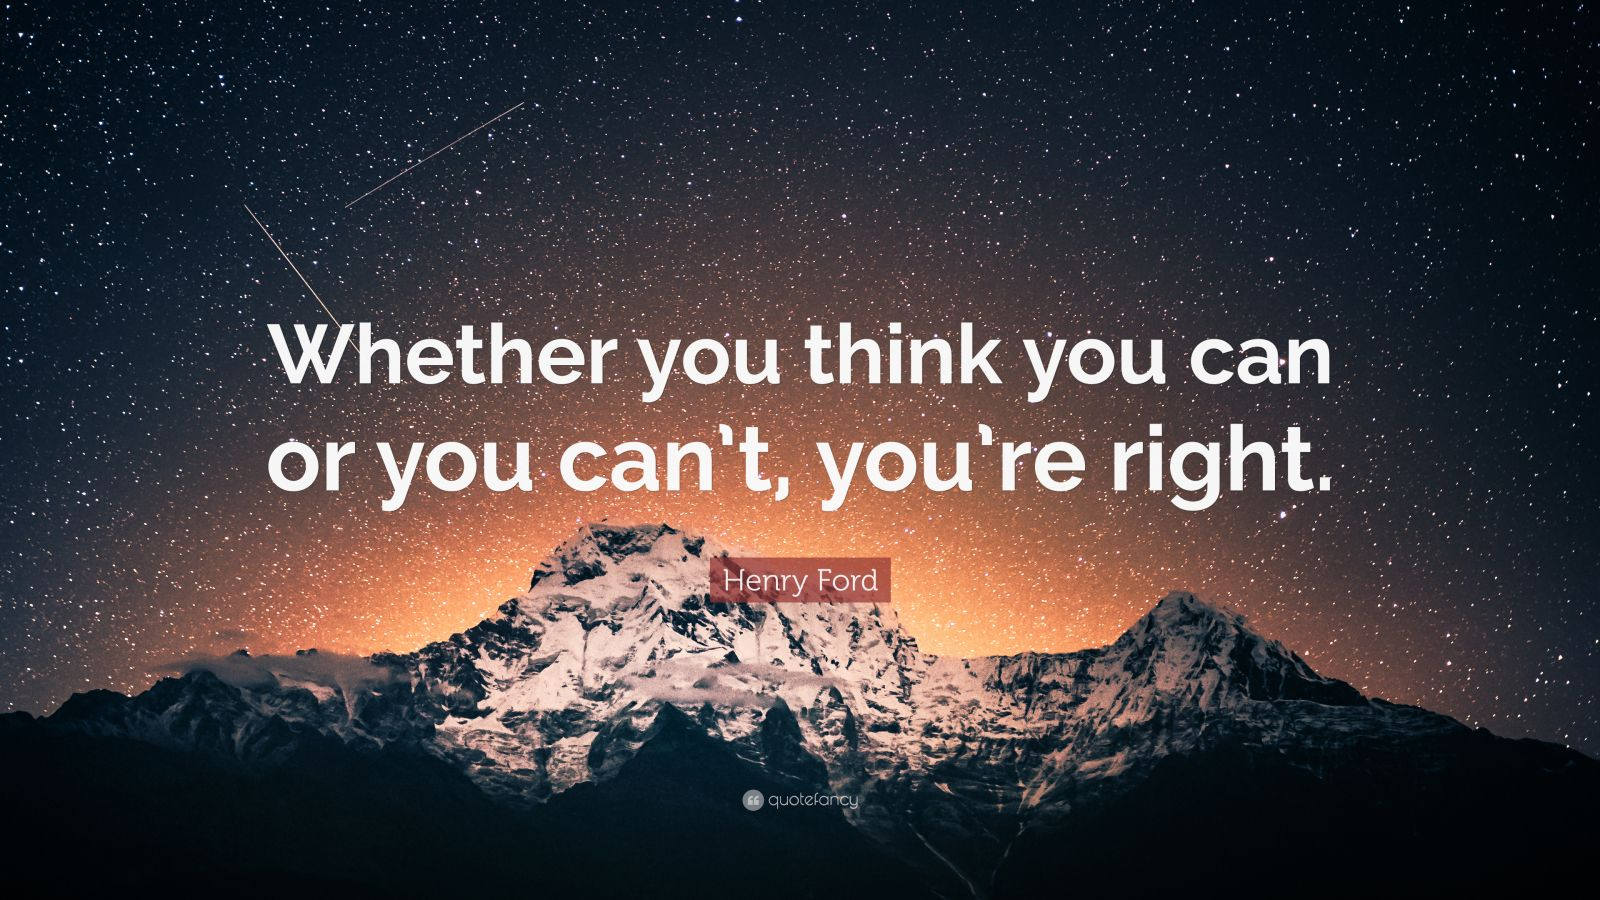 """Henry Ford Quote: """"Whether you think you can or you can't, you're right."""" (34 wallpapers) - Quotefancy"""